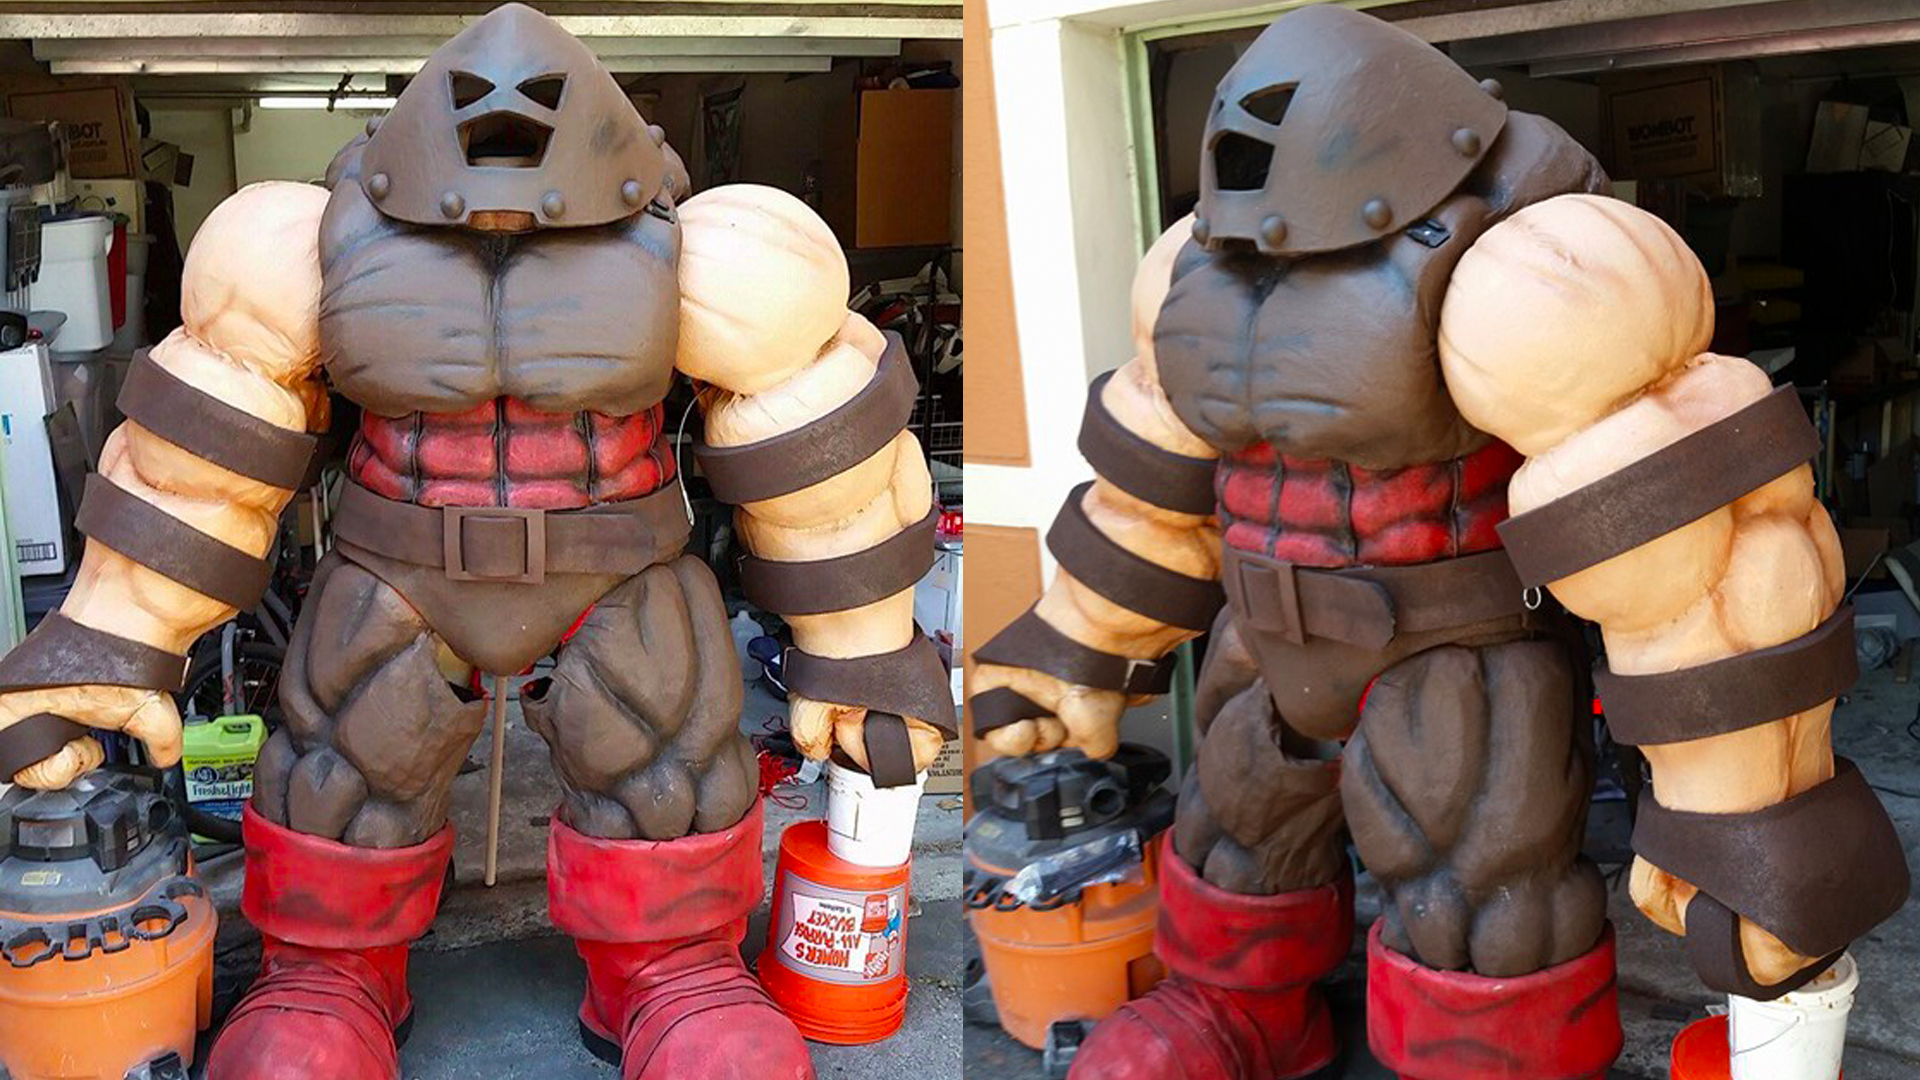 This Guy Built A 7 Foot Tall Juggernaut Cosplay Suit